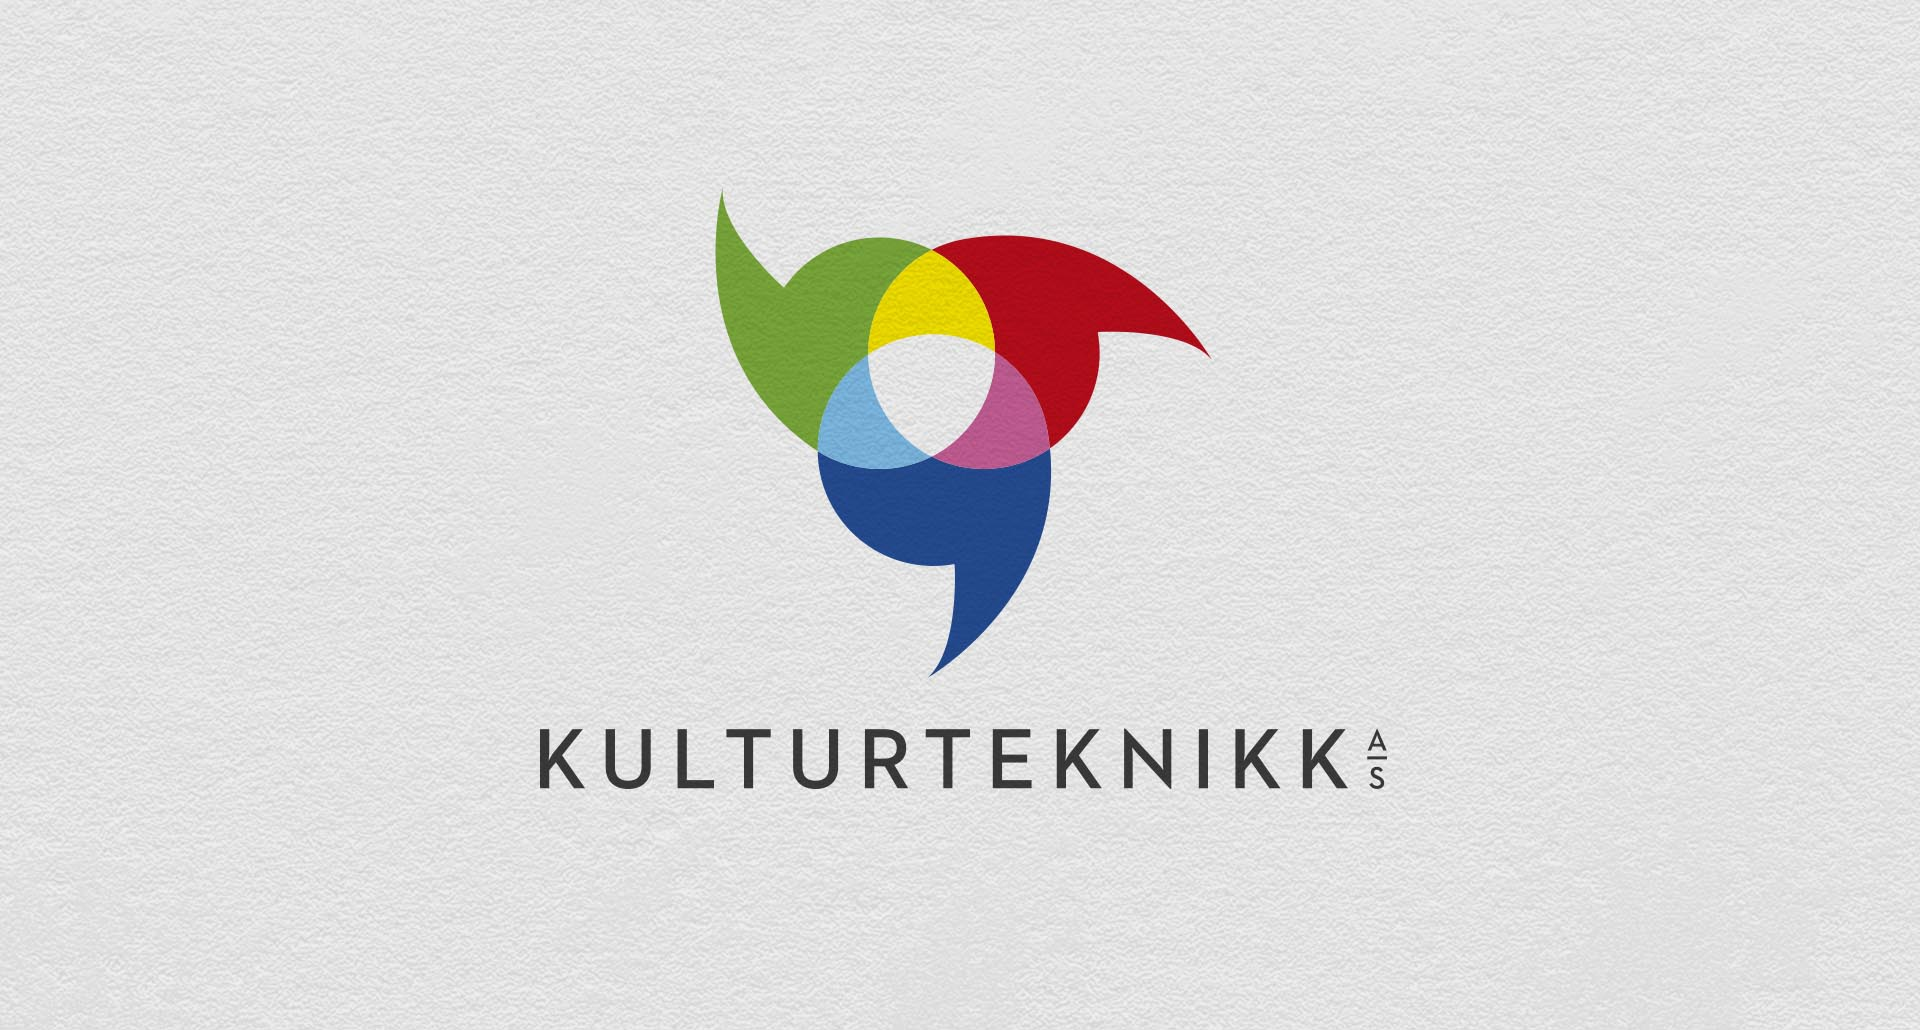 Kulturteknikk AS | by Sisu design lab